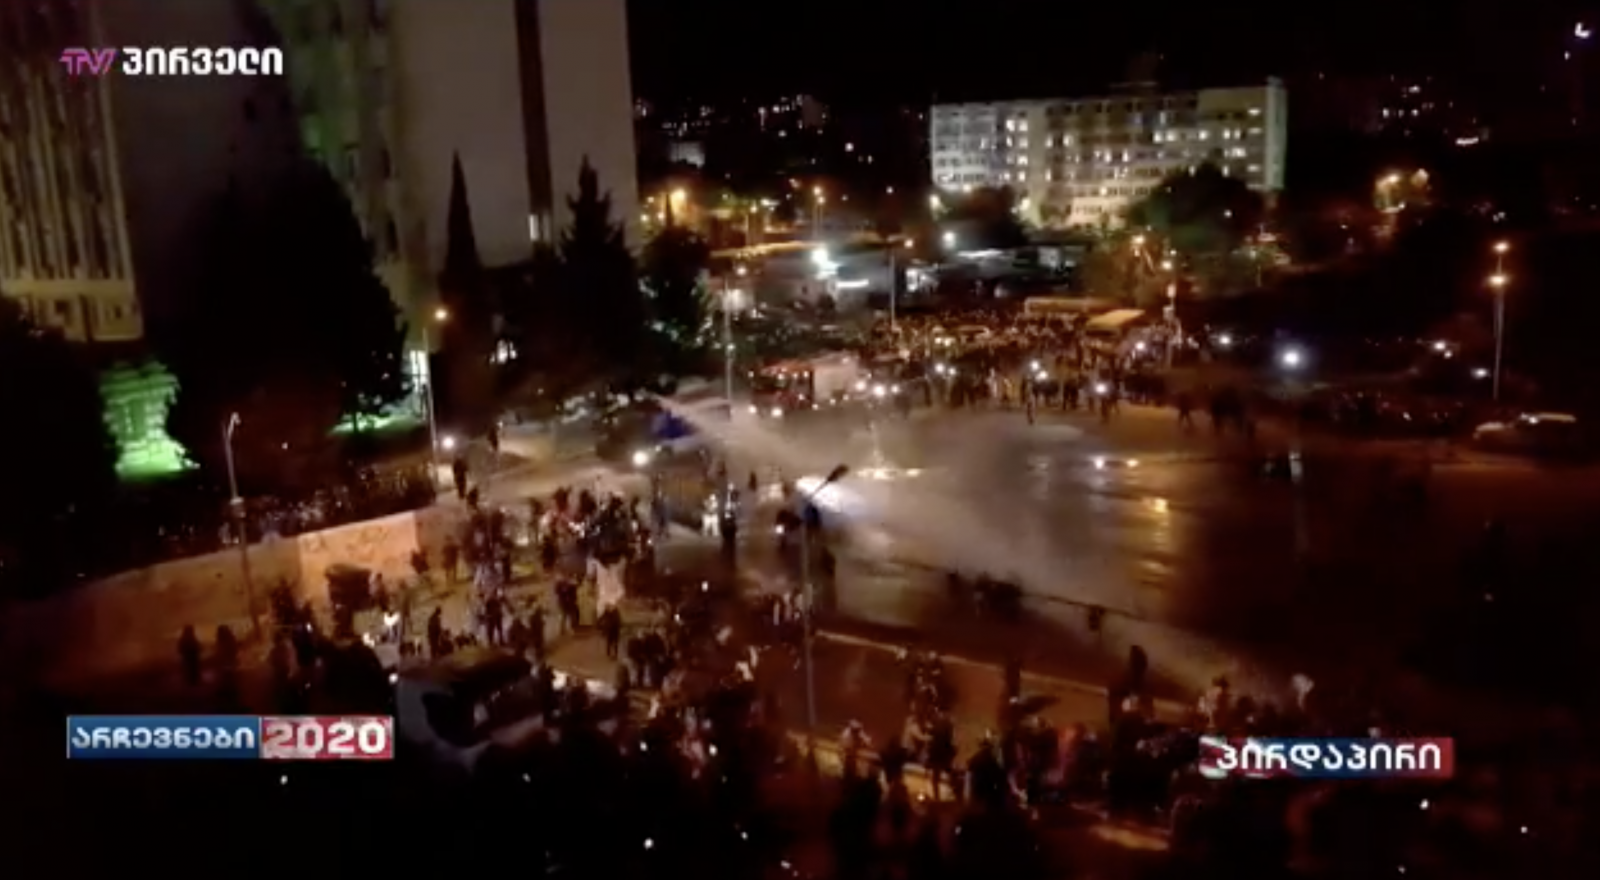 This Means Exceeding Power – Former Ombudsman on Using Water Cannons Against Protesters